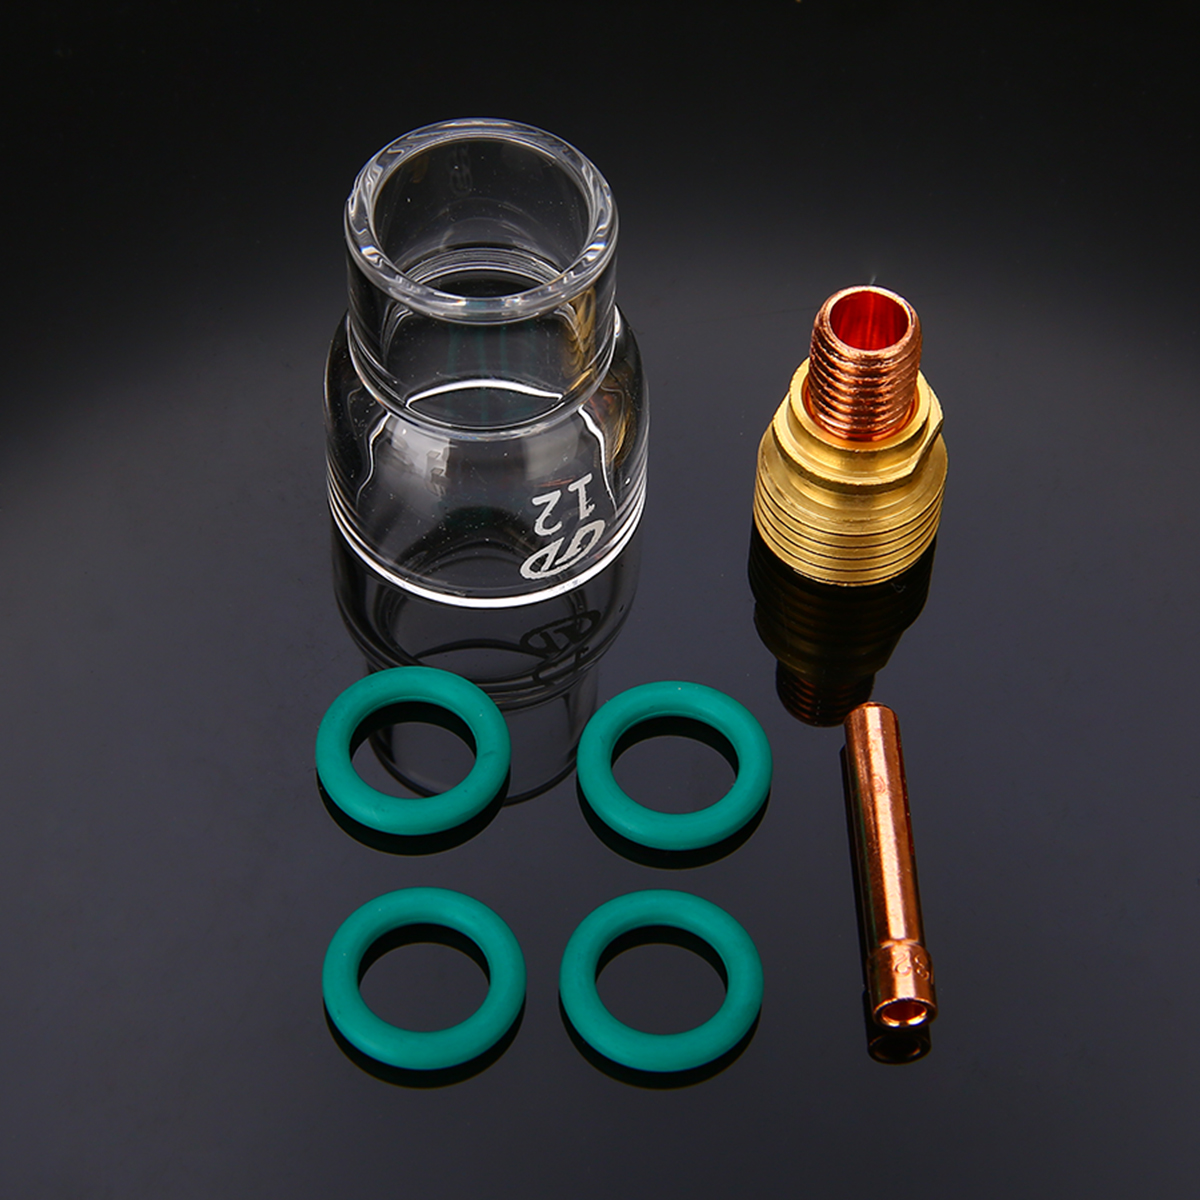 12 Pyrex Glass Cup Gas Lens Collet Kit For WP 9 20 25 Tig Welding Torch 9PK